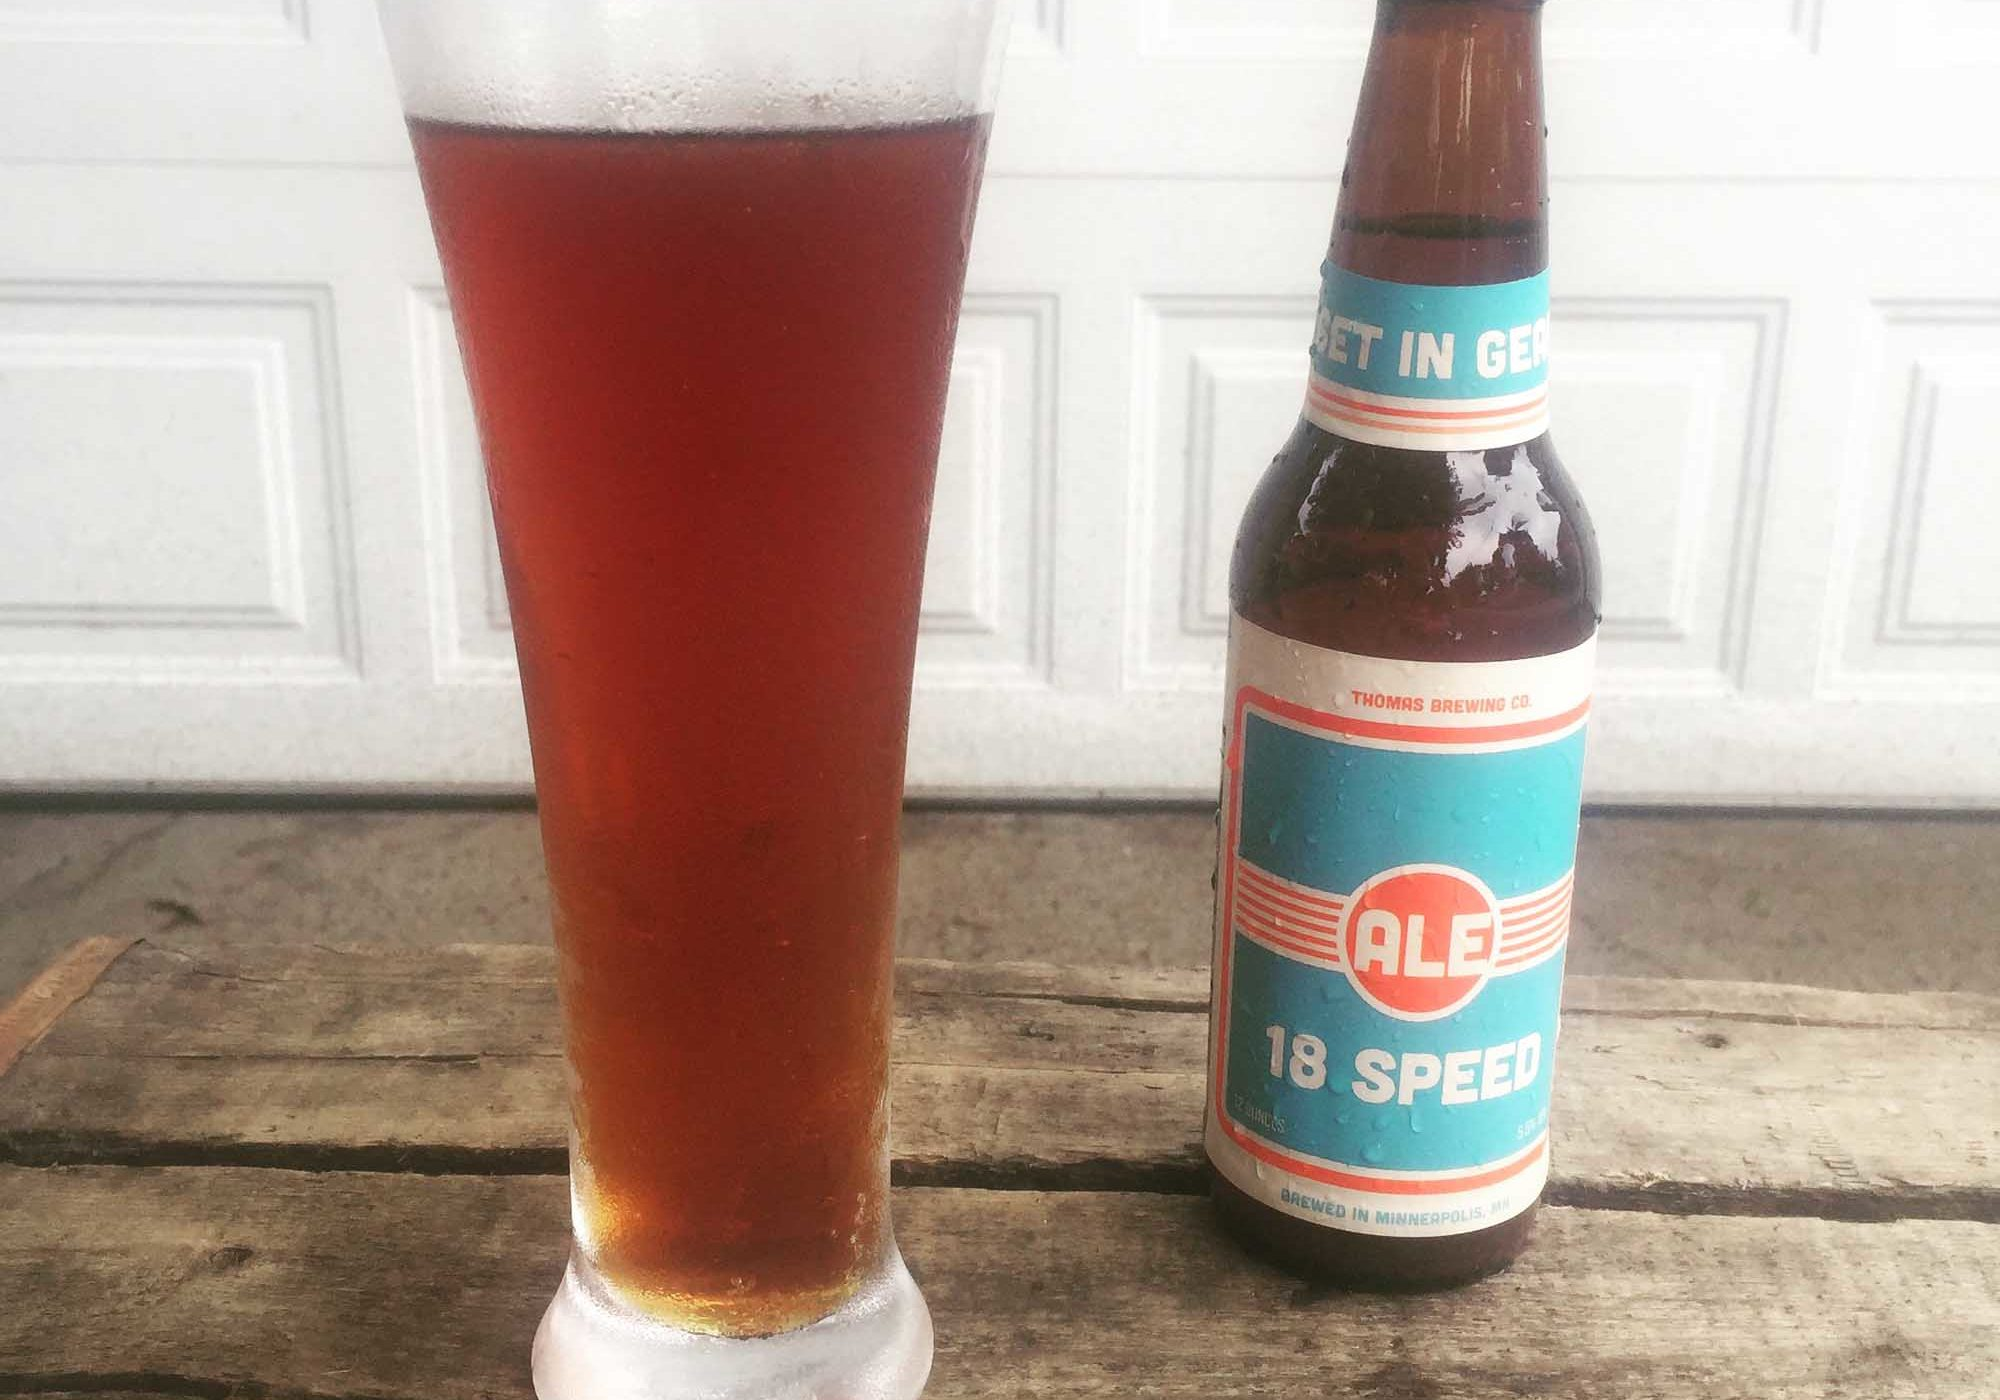 18 Speed Ale